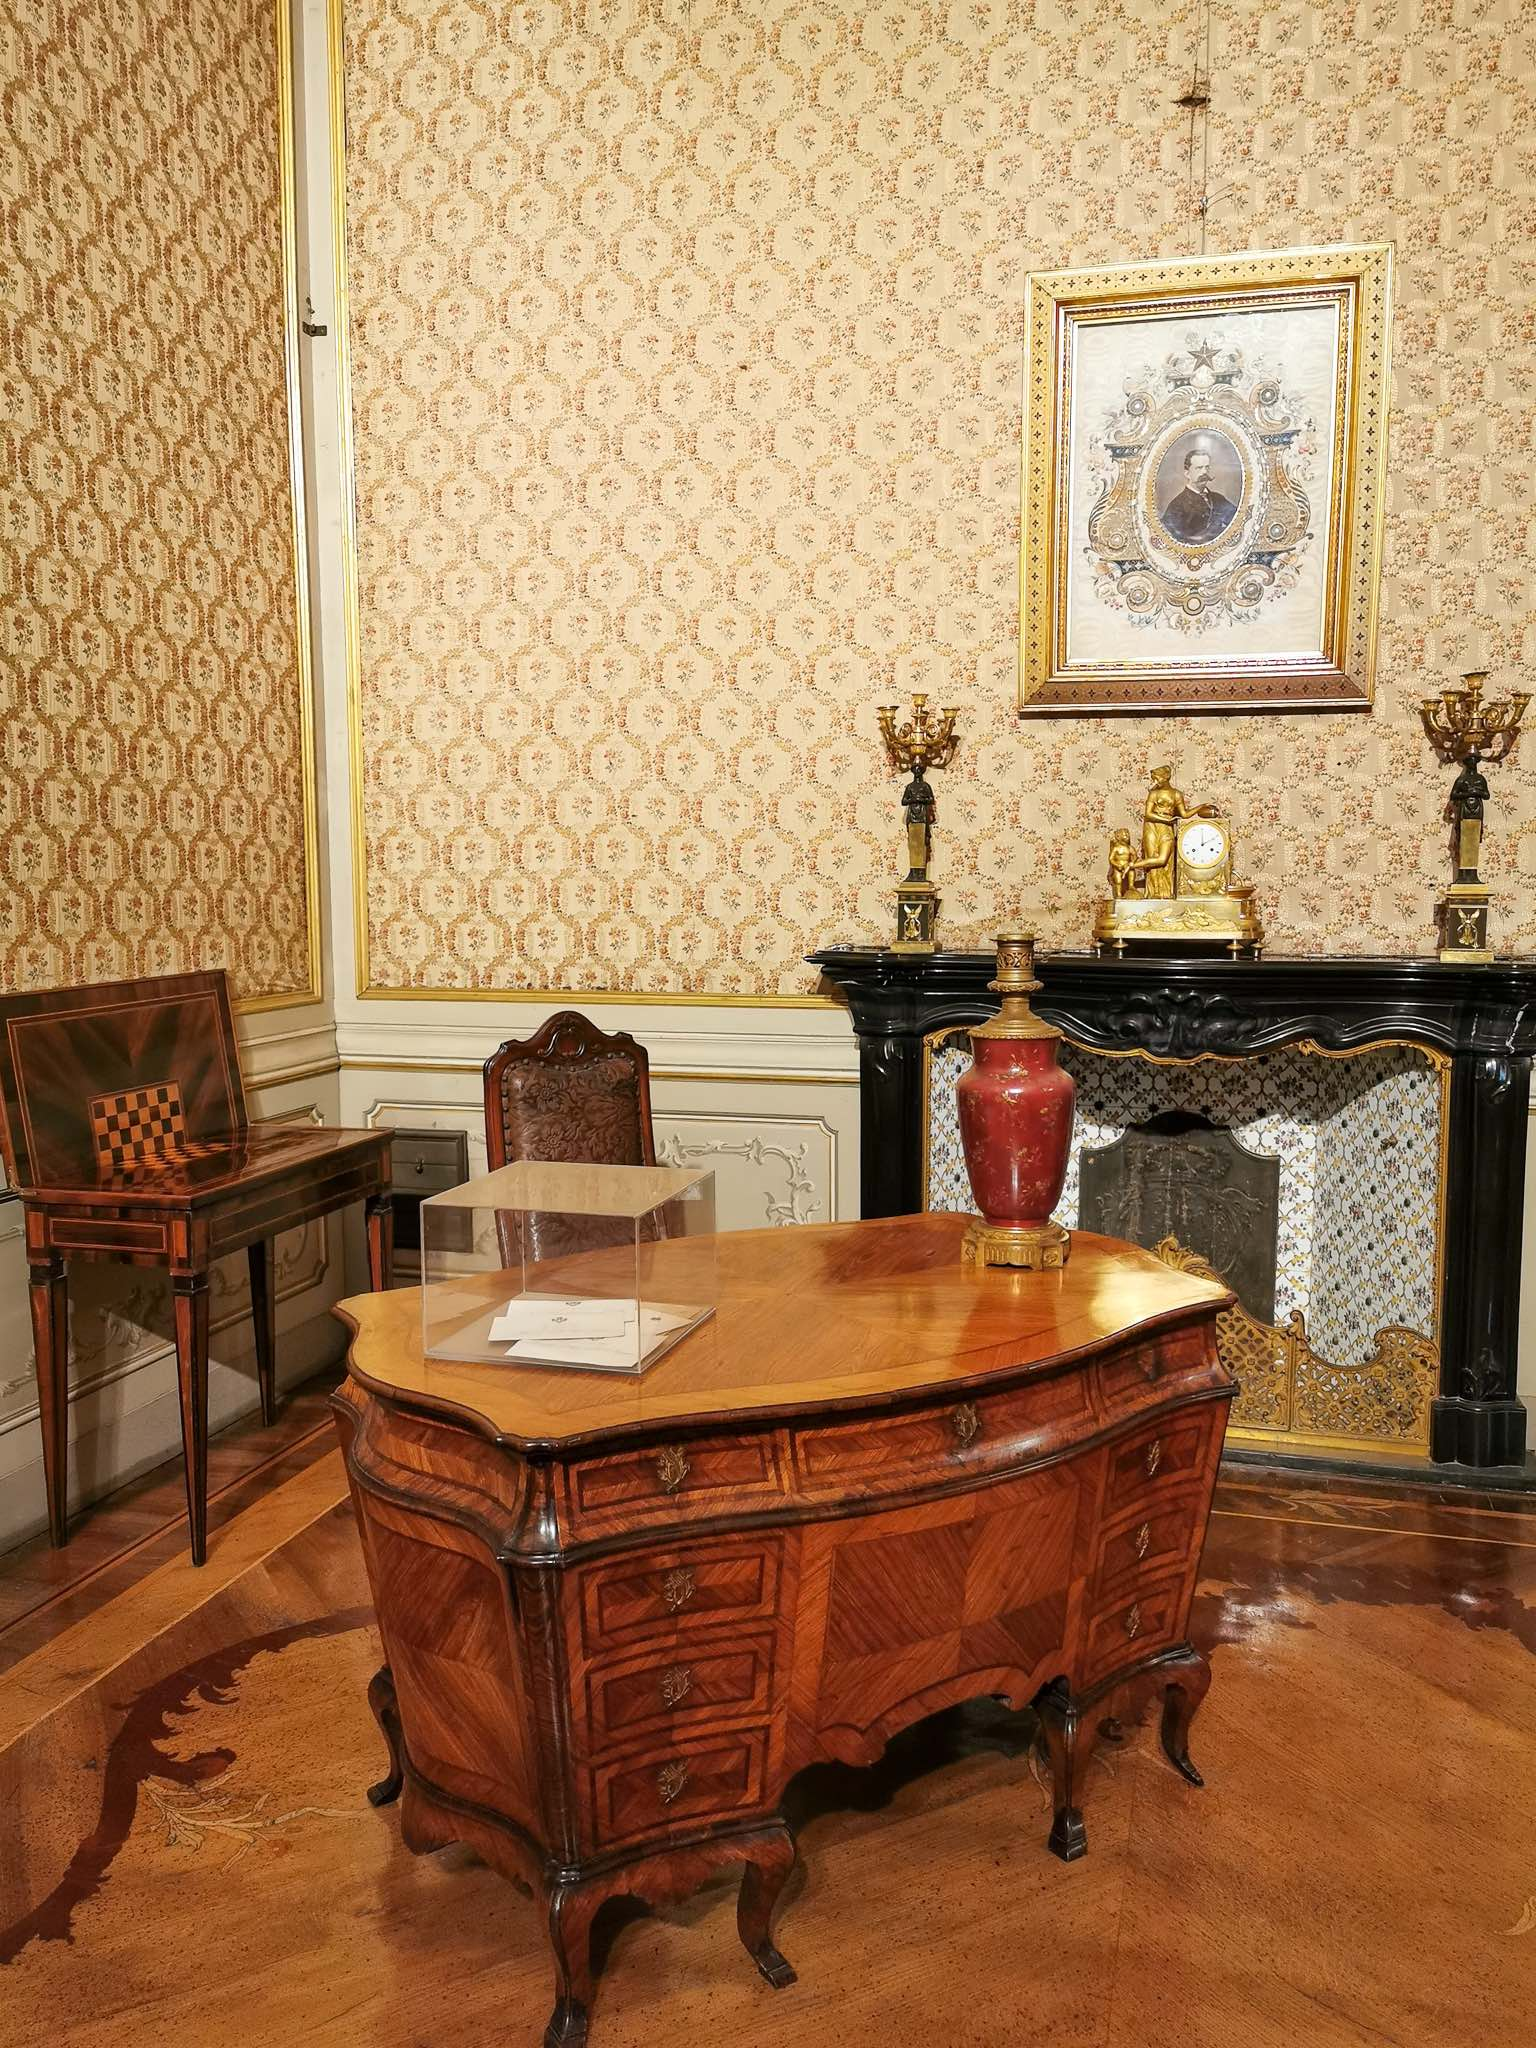 The interiors of the Royal Villa in Monza